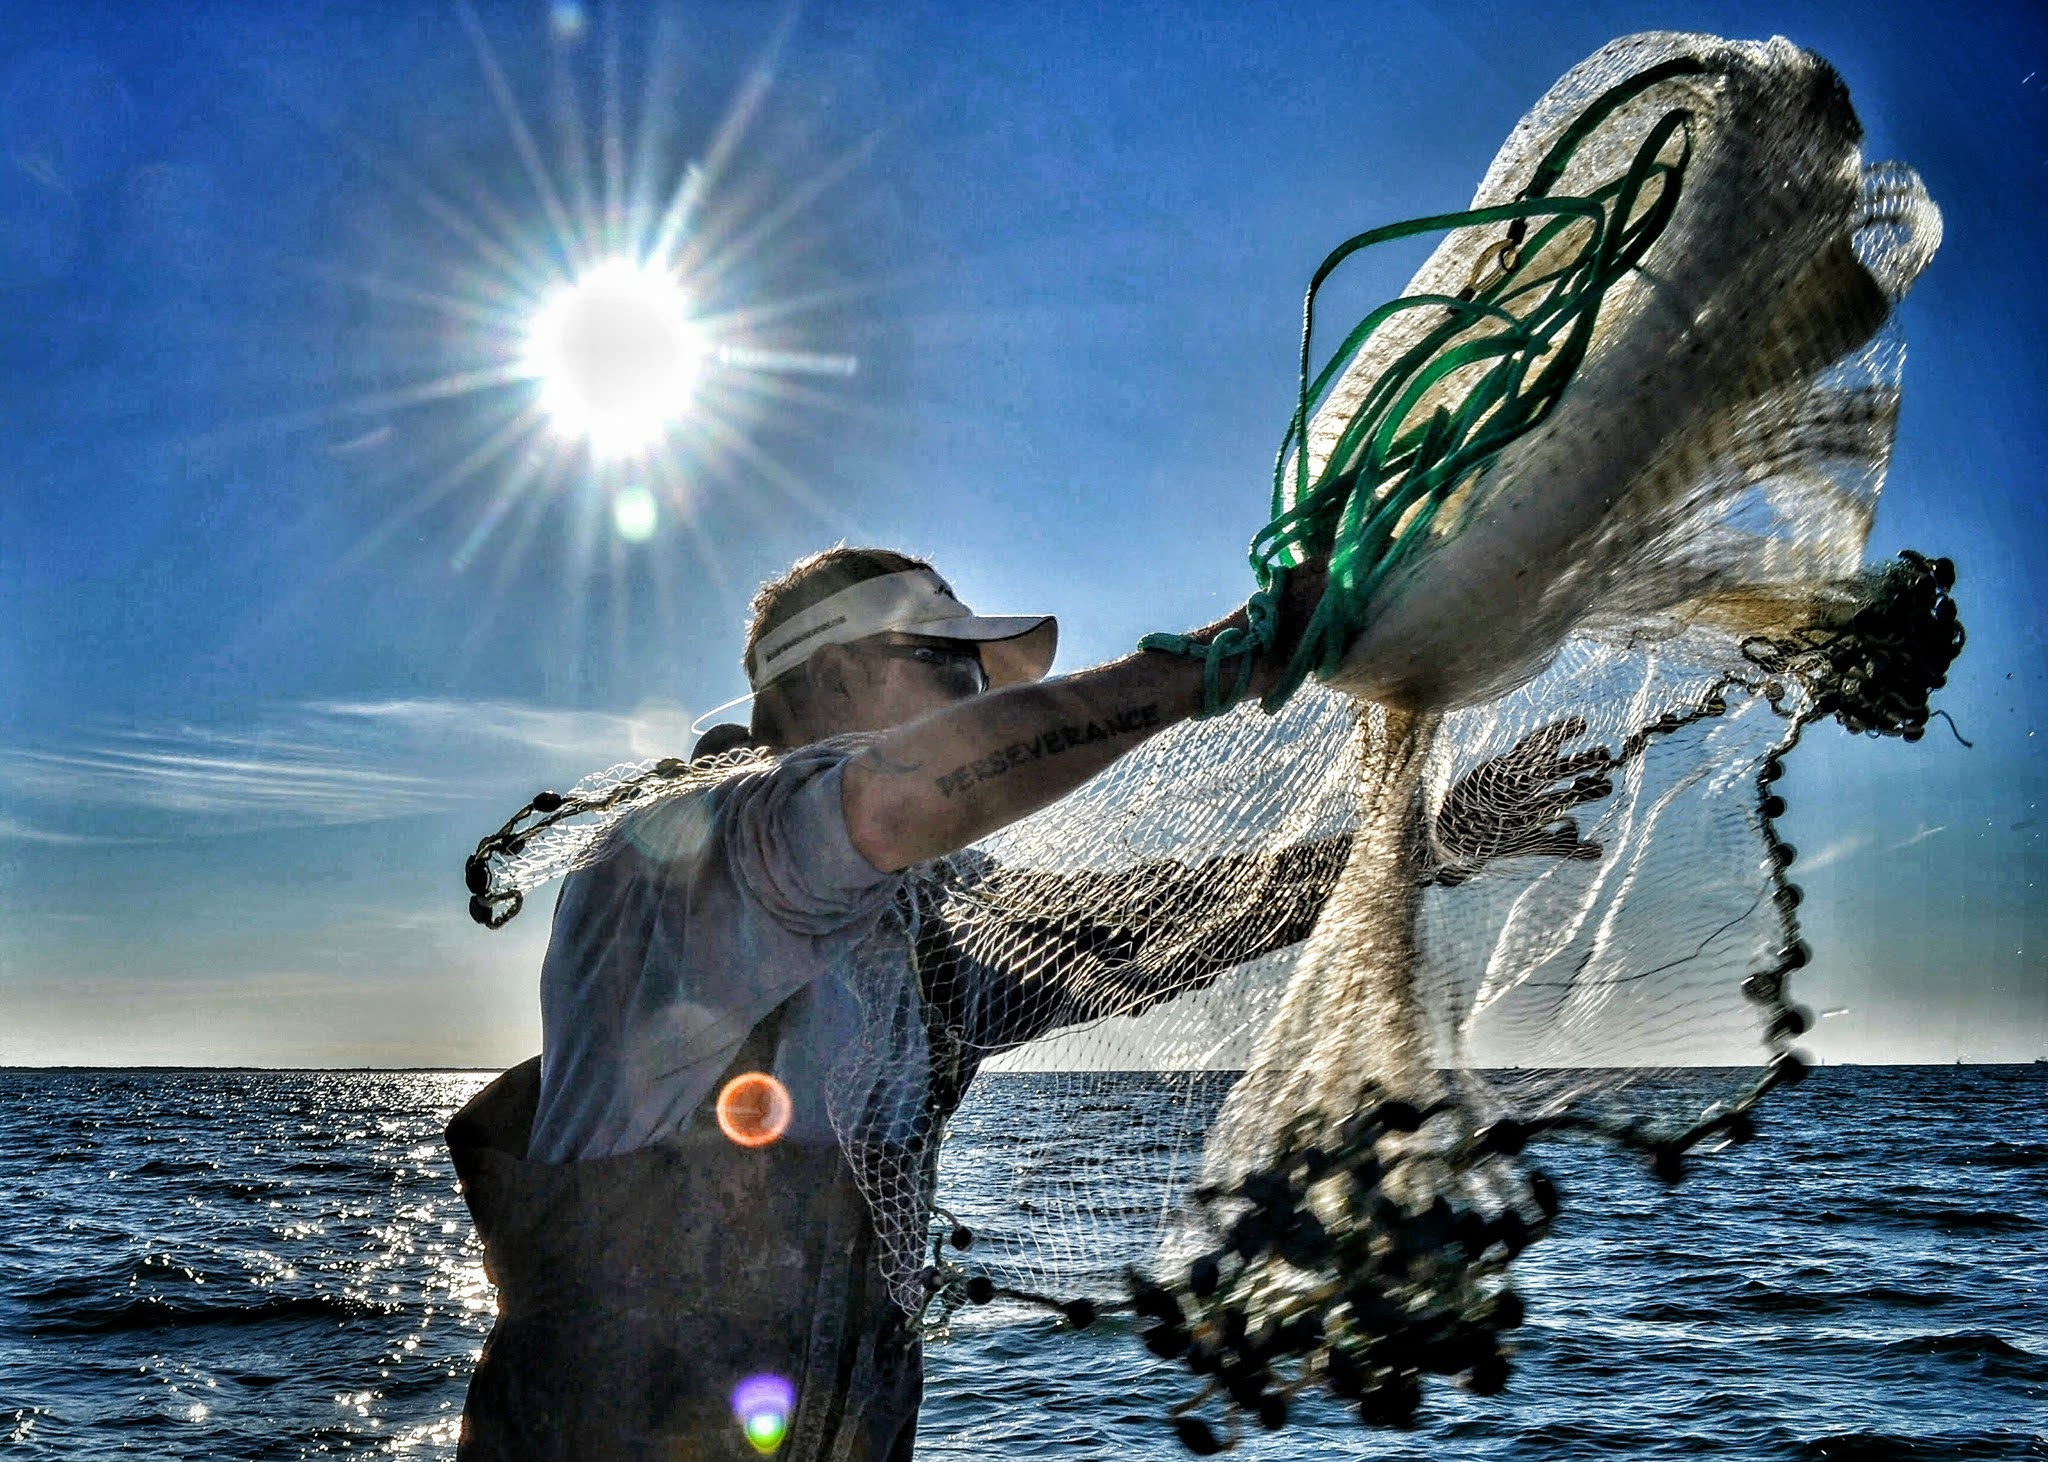 Captain Chris Kimrey Casts Net, Beaufort, NC